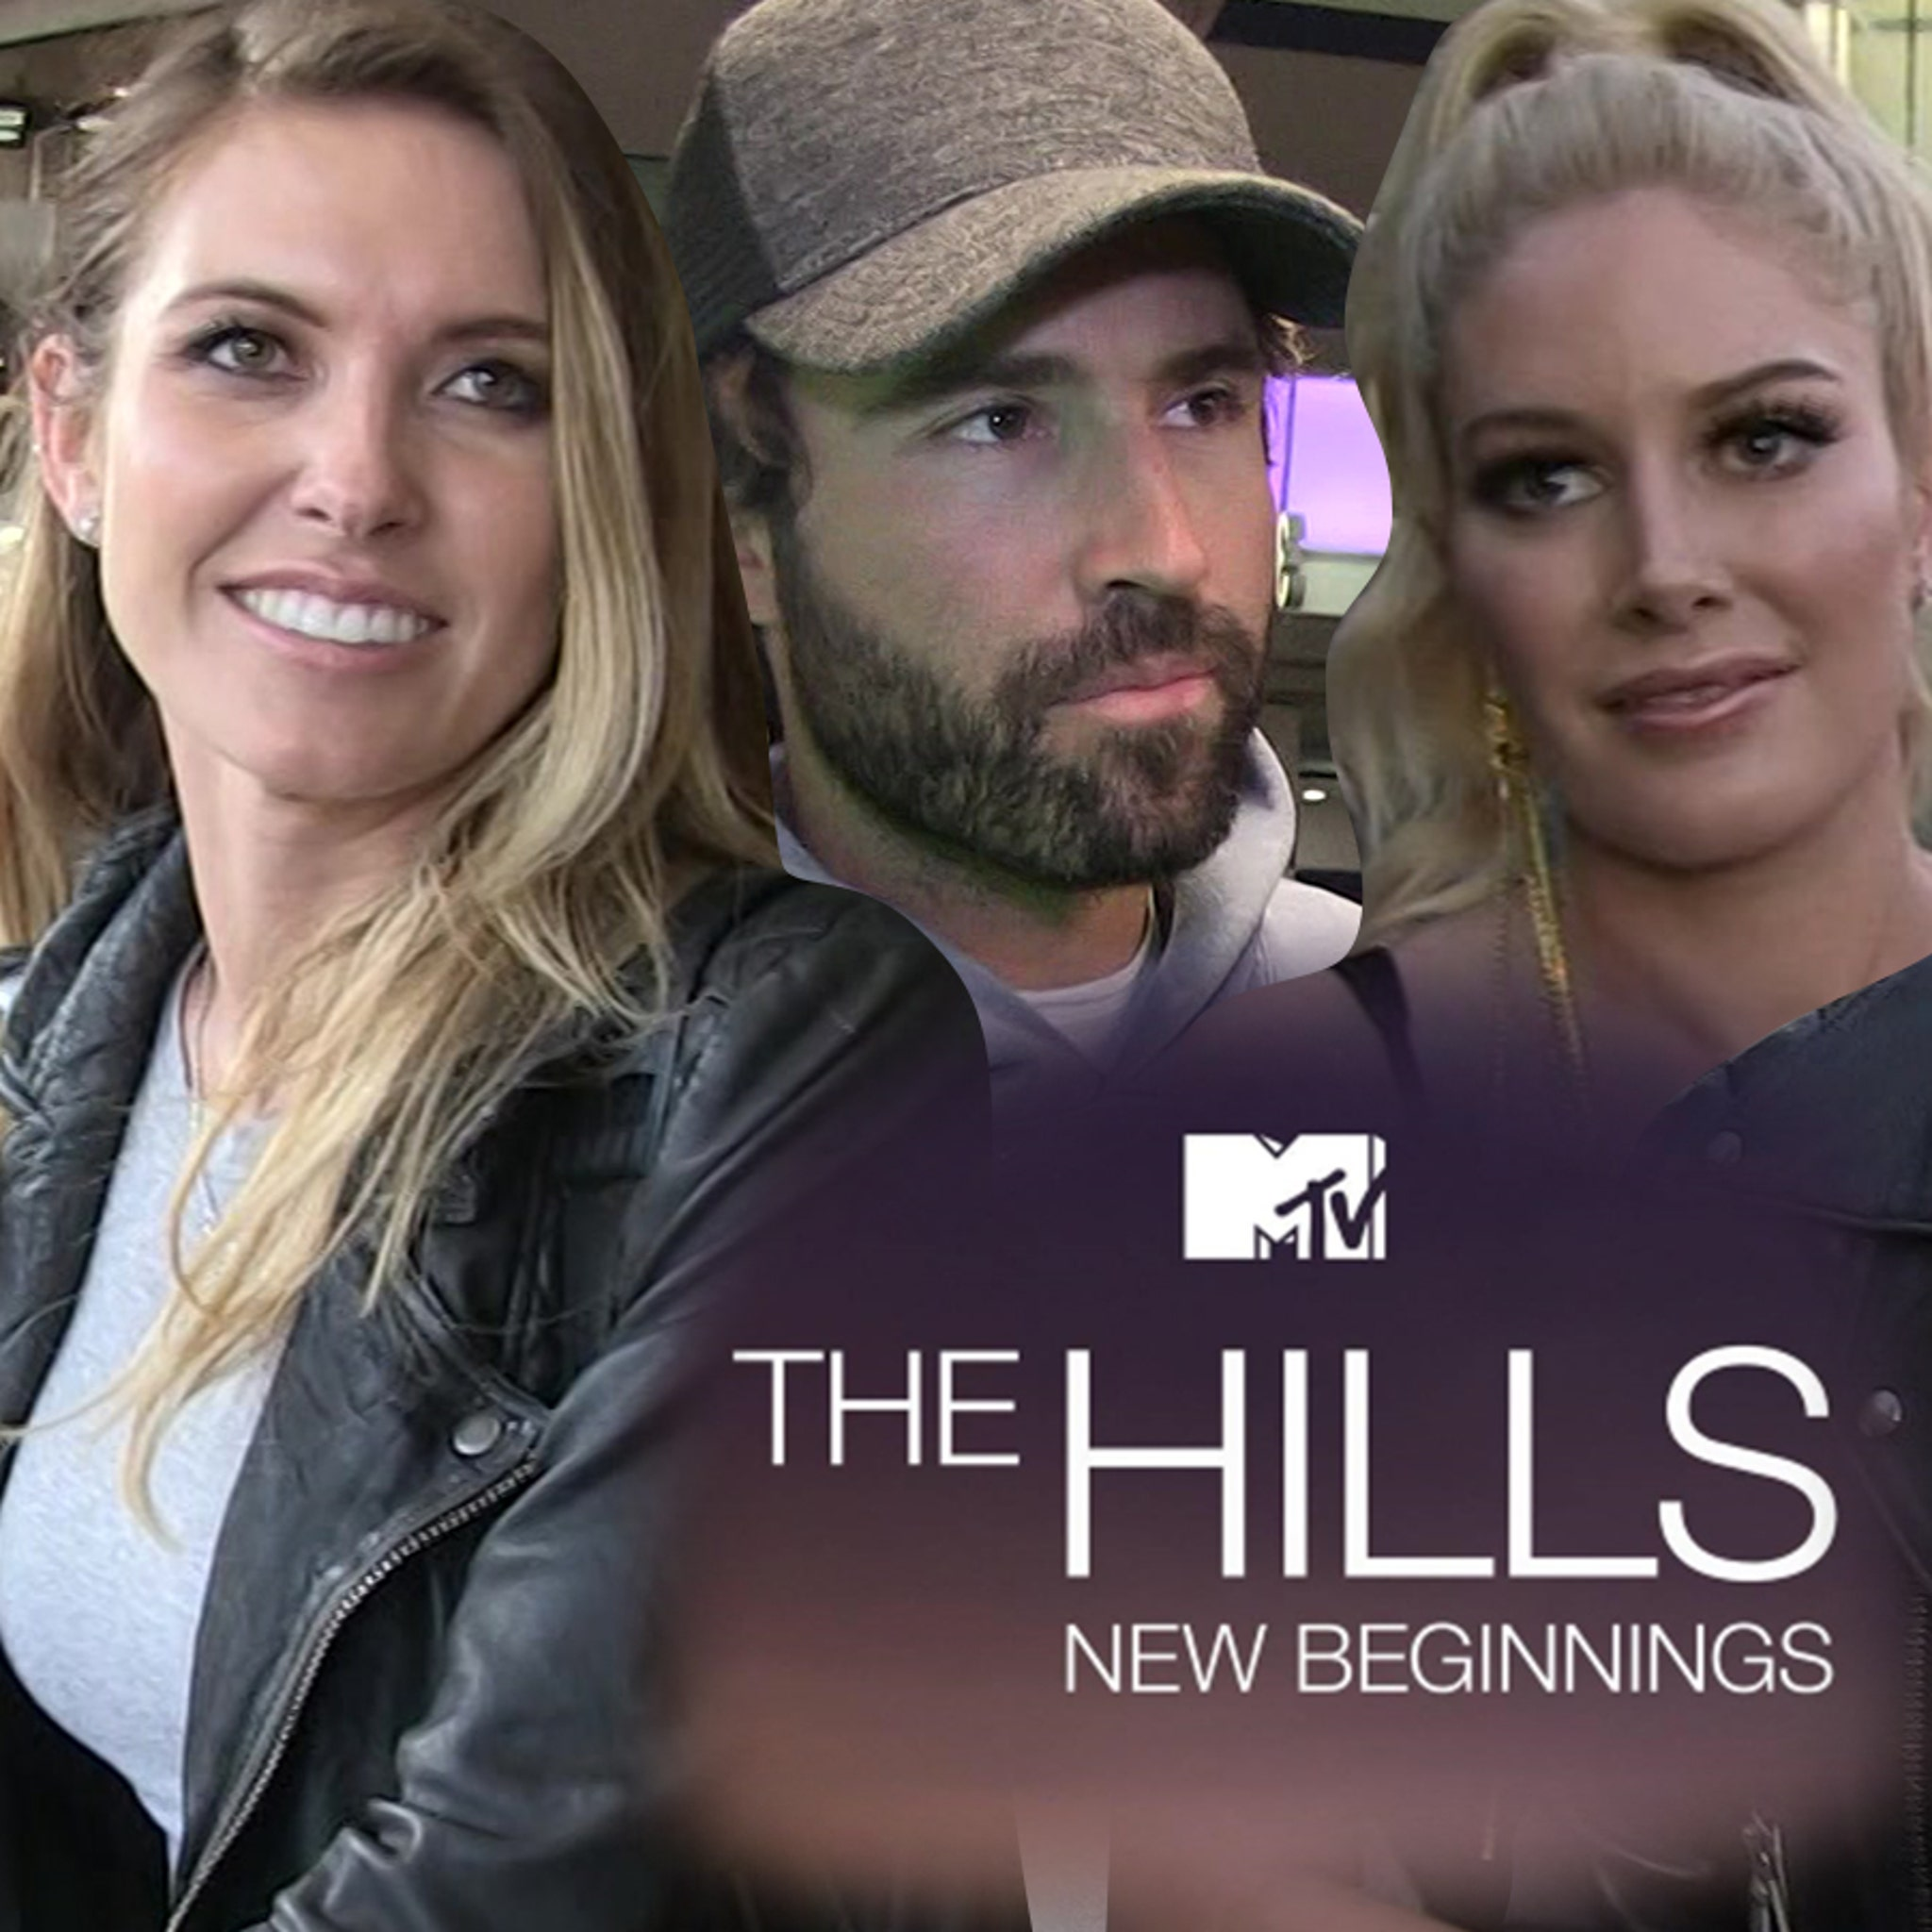 The Hills: New Beginnings' May Put Cast in Bubble to Film Season 2